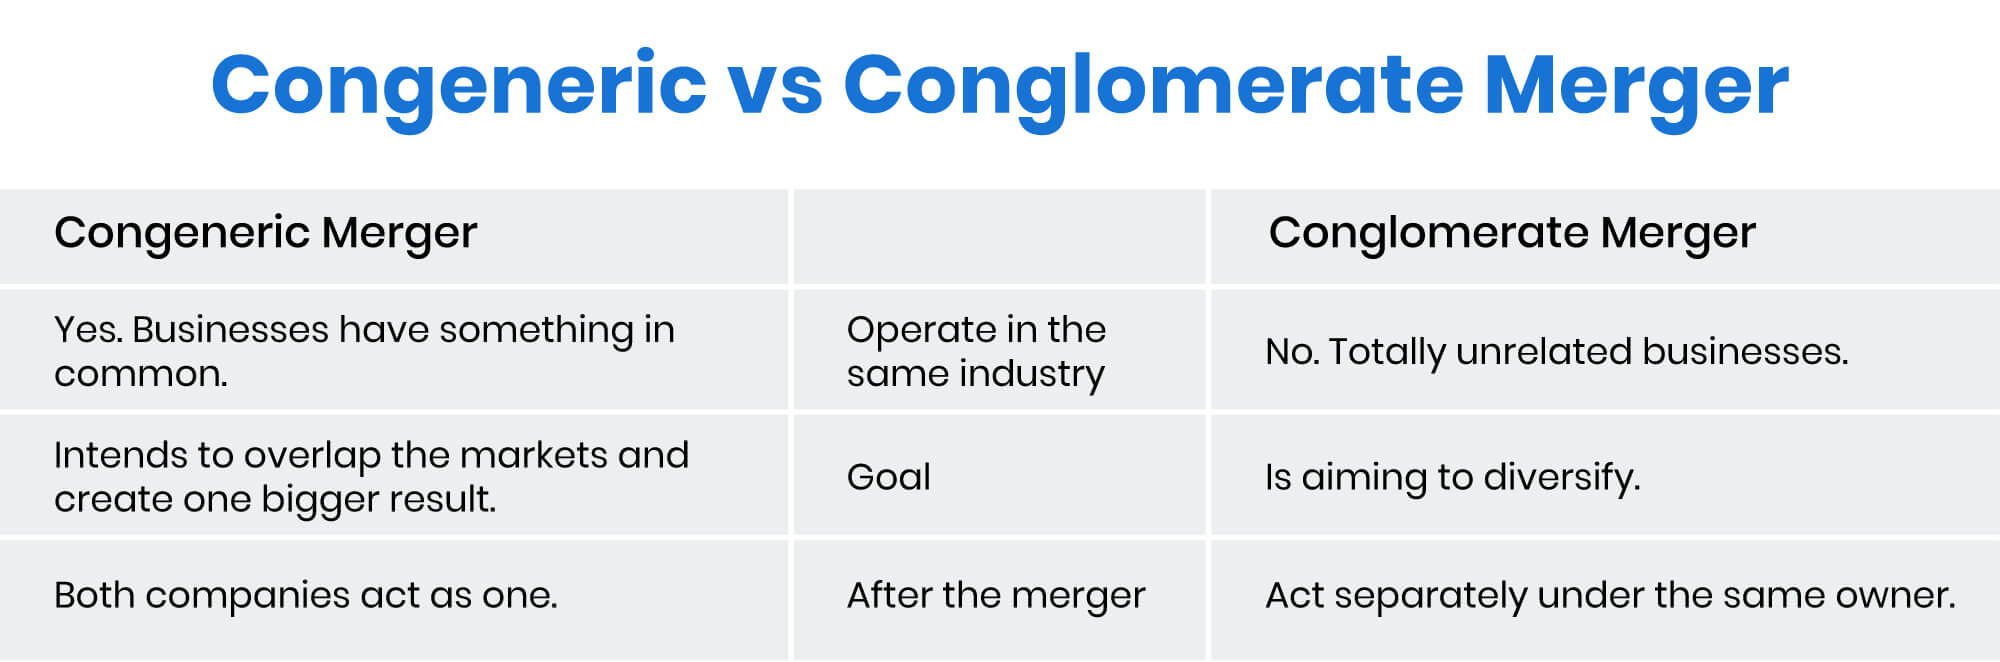 congeneric vs conglomerate merger